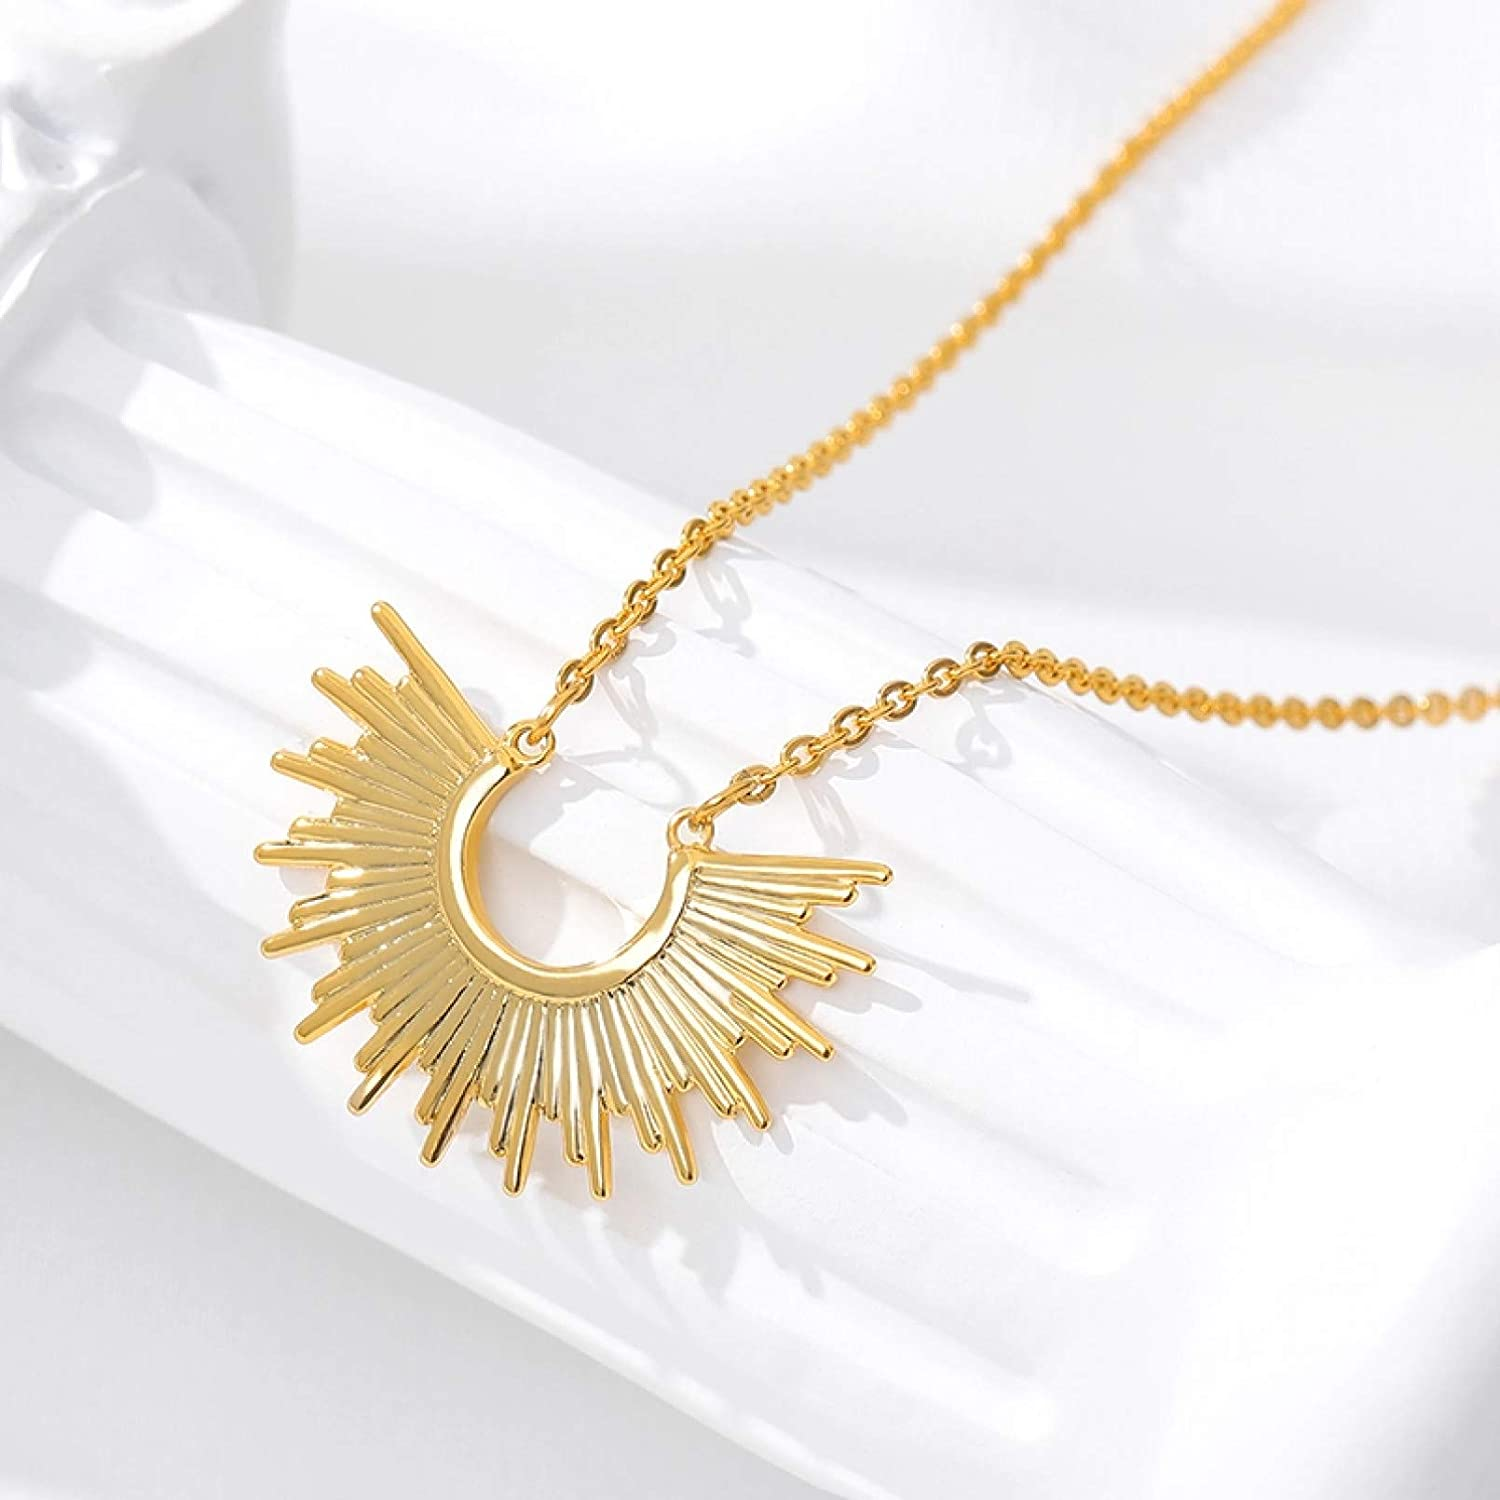 N/A Necklace Pendant Gold Color Sunburst Pendant Necklace Jewelry Stainless Steel Sunshine Choker Necklaces for Women collares Woman Christmas Birthday Gift